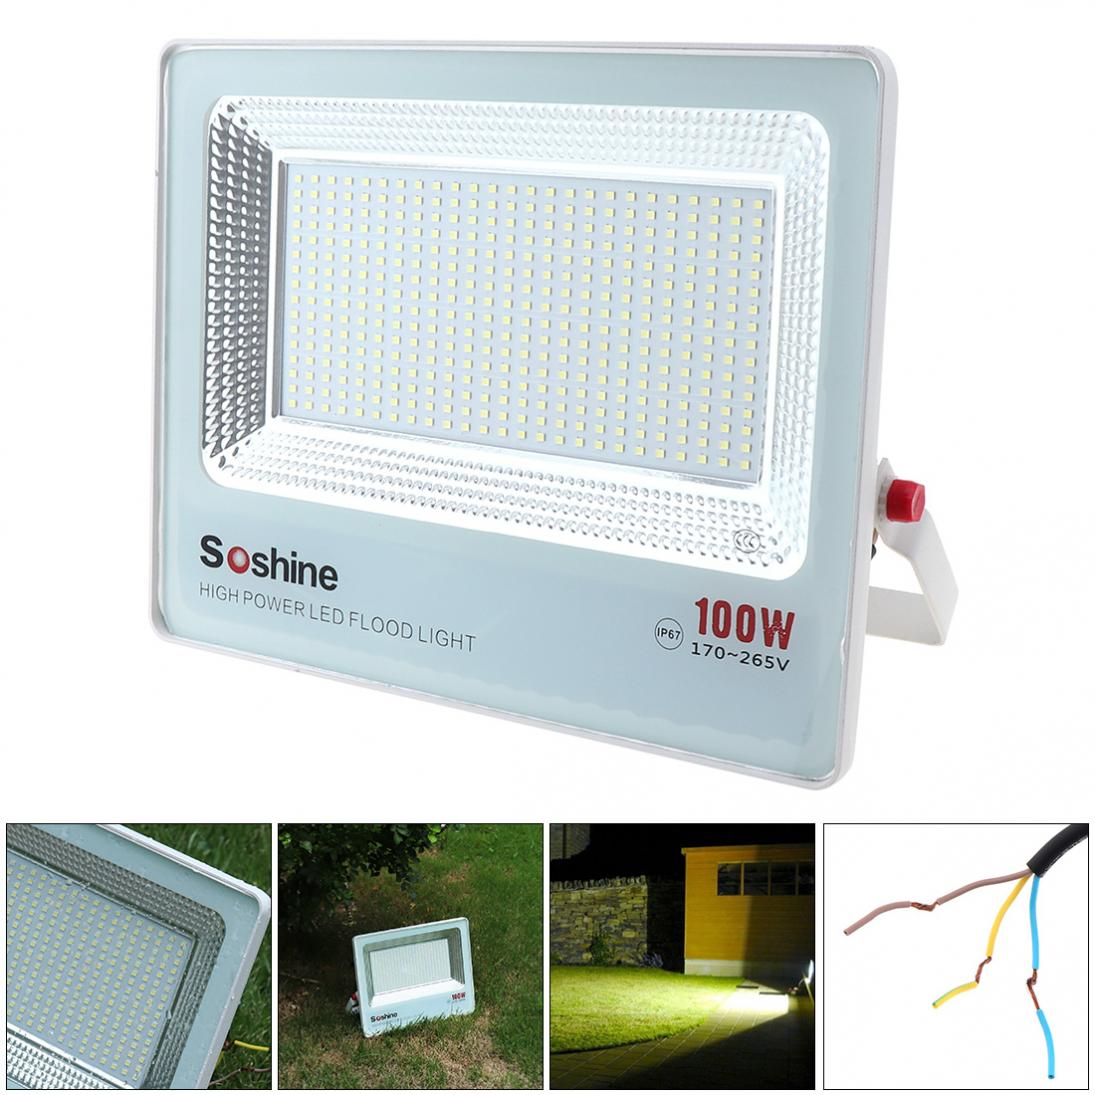 10000 LM AC180 265V Waterproof Outdoor 100W 400 PCT2835 LED Floodlight with 120 Degree Angle for